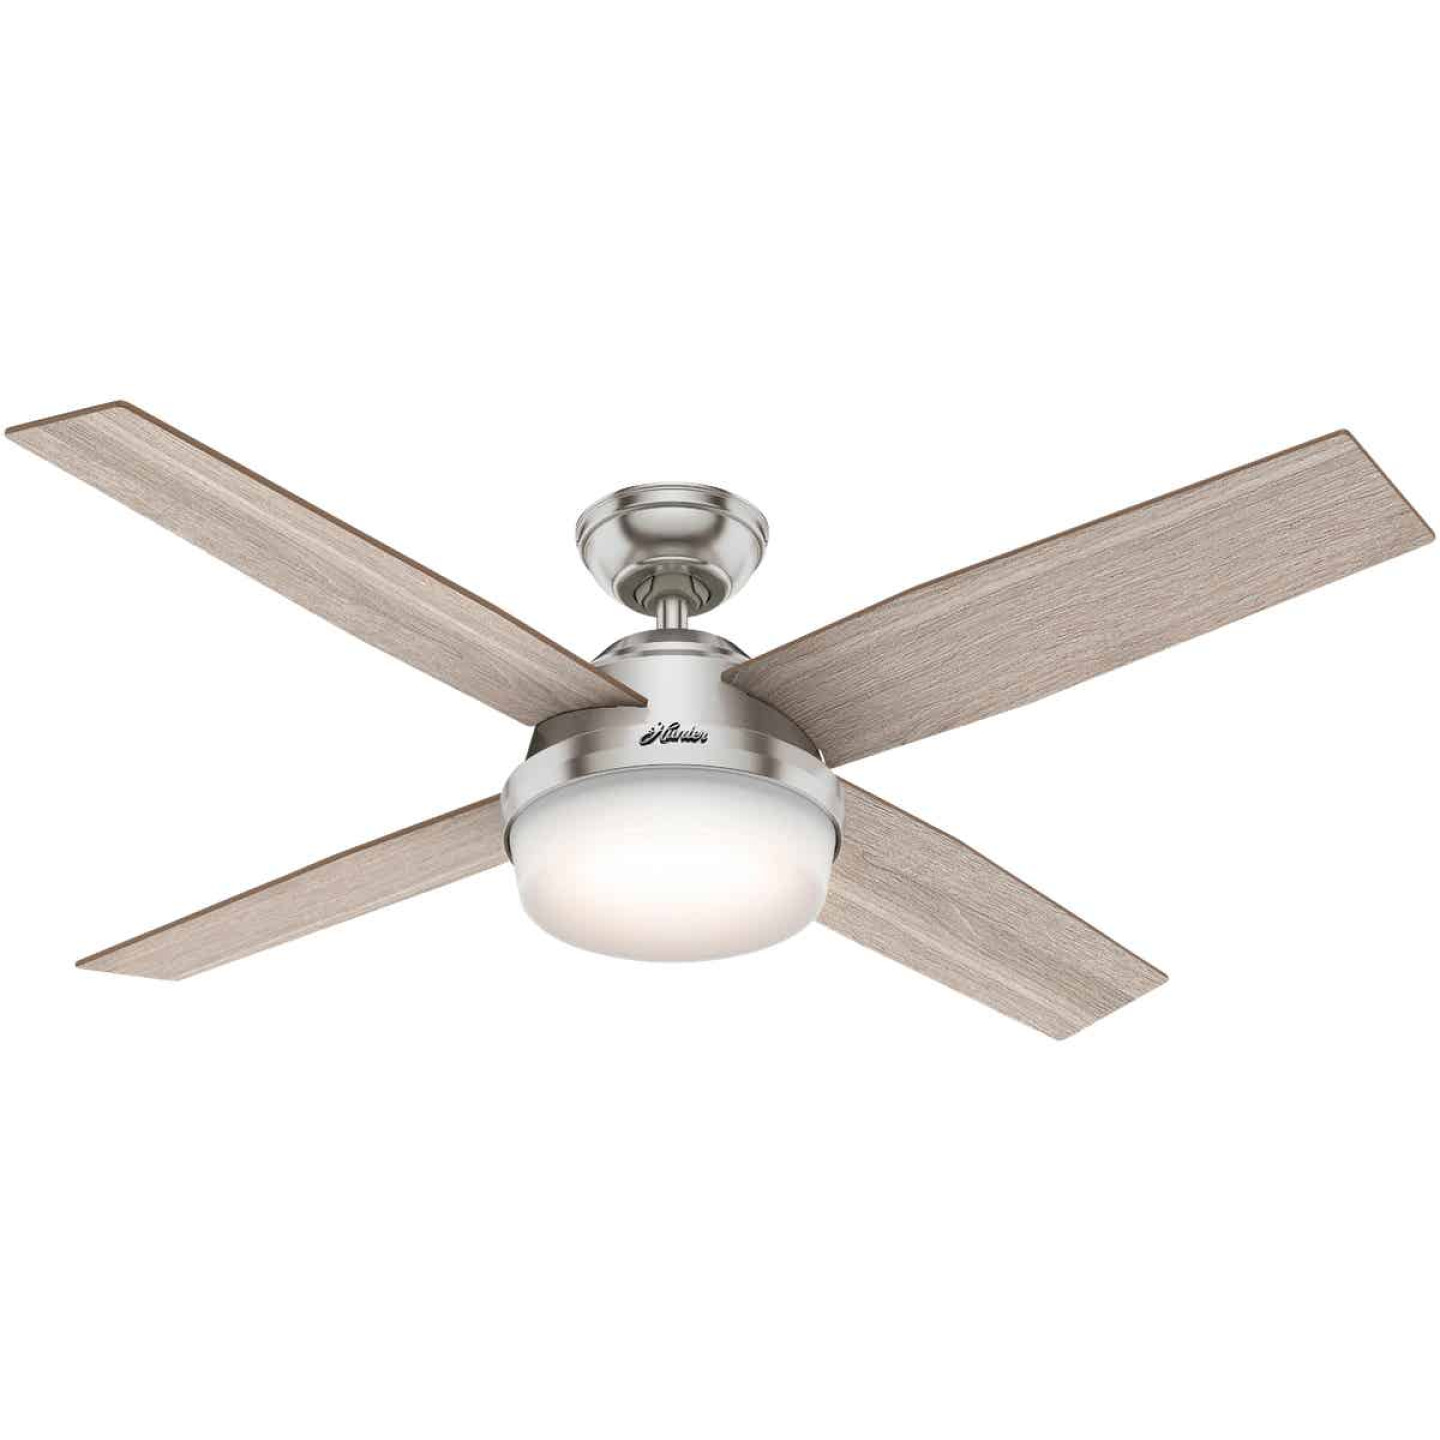 Hunter Dempsey 52 In. Brush Nickel Ceiling Fan with Light Kit Image 1